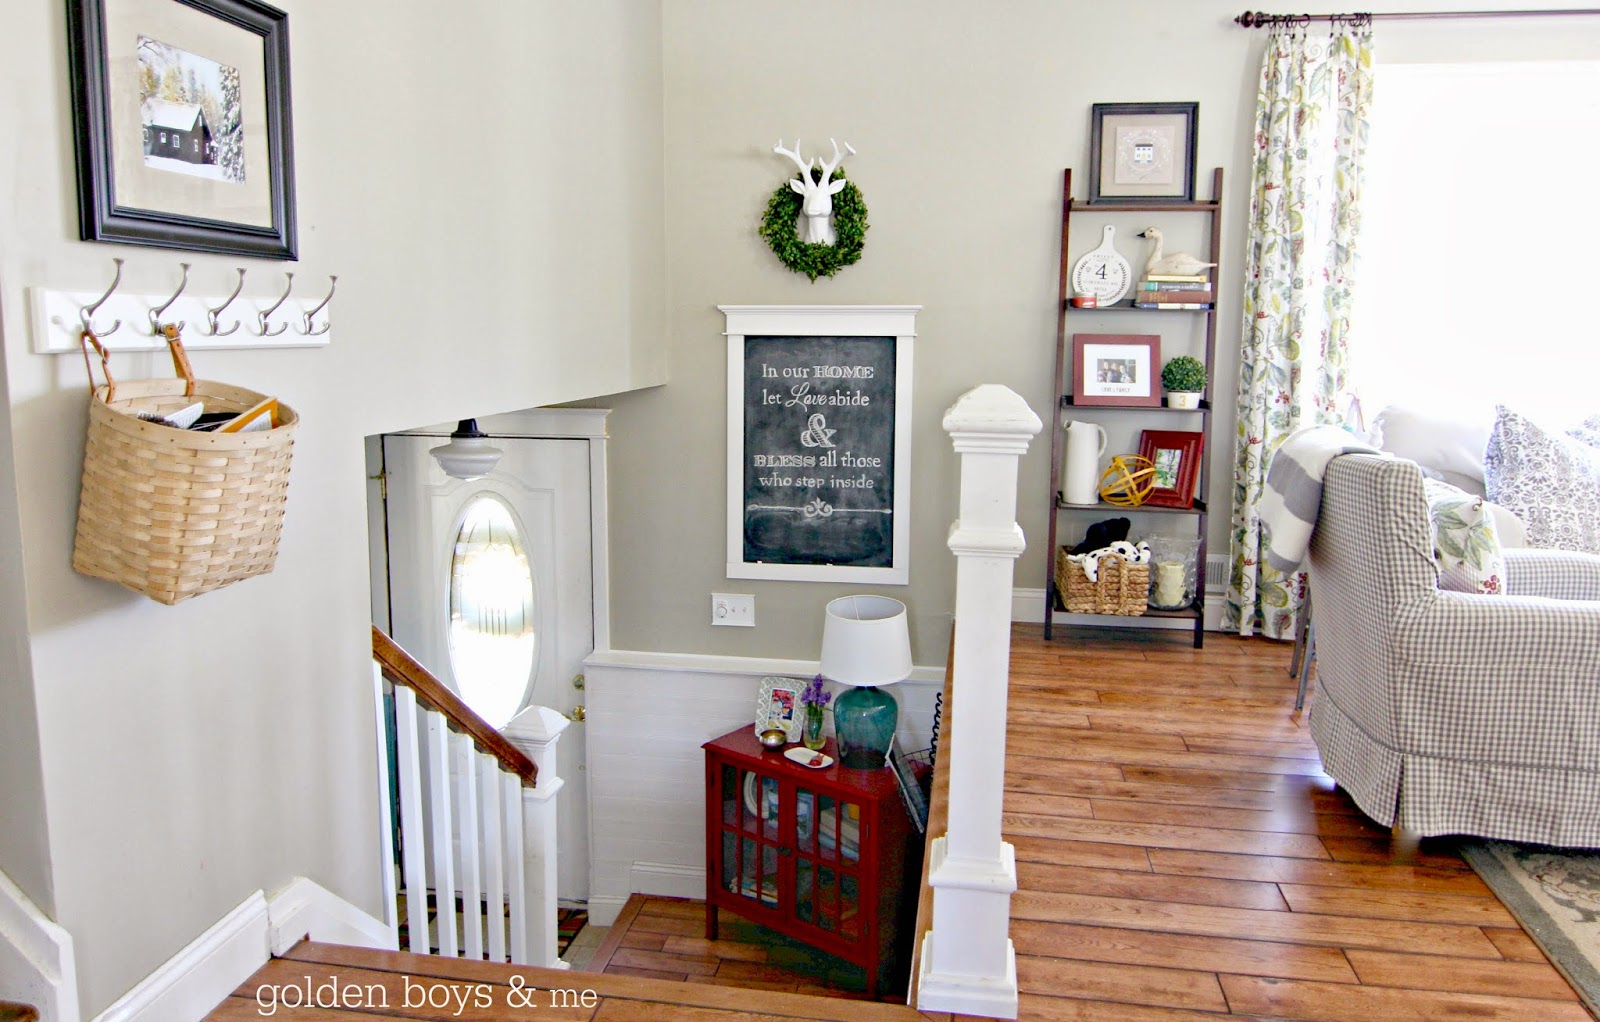 Spring decorating with diy window trim chalkboard and leaning ladder bookshelf-www.goldenboysandme.com